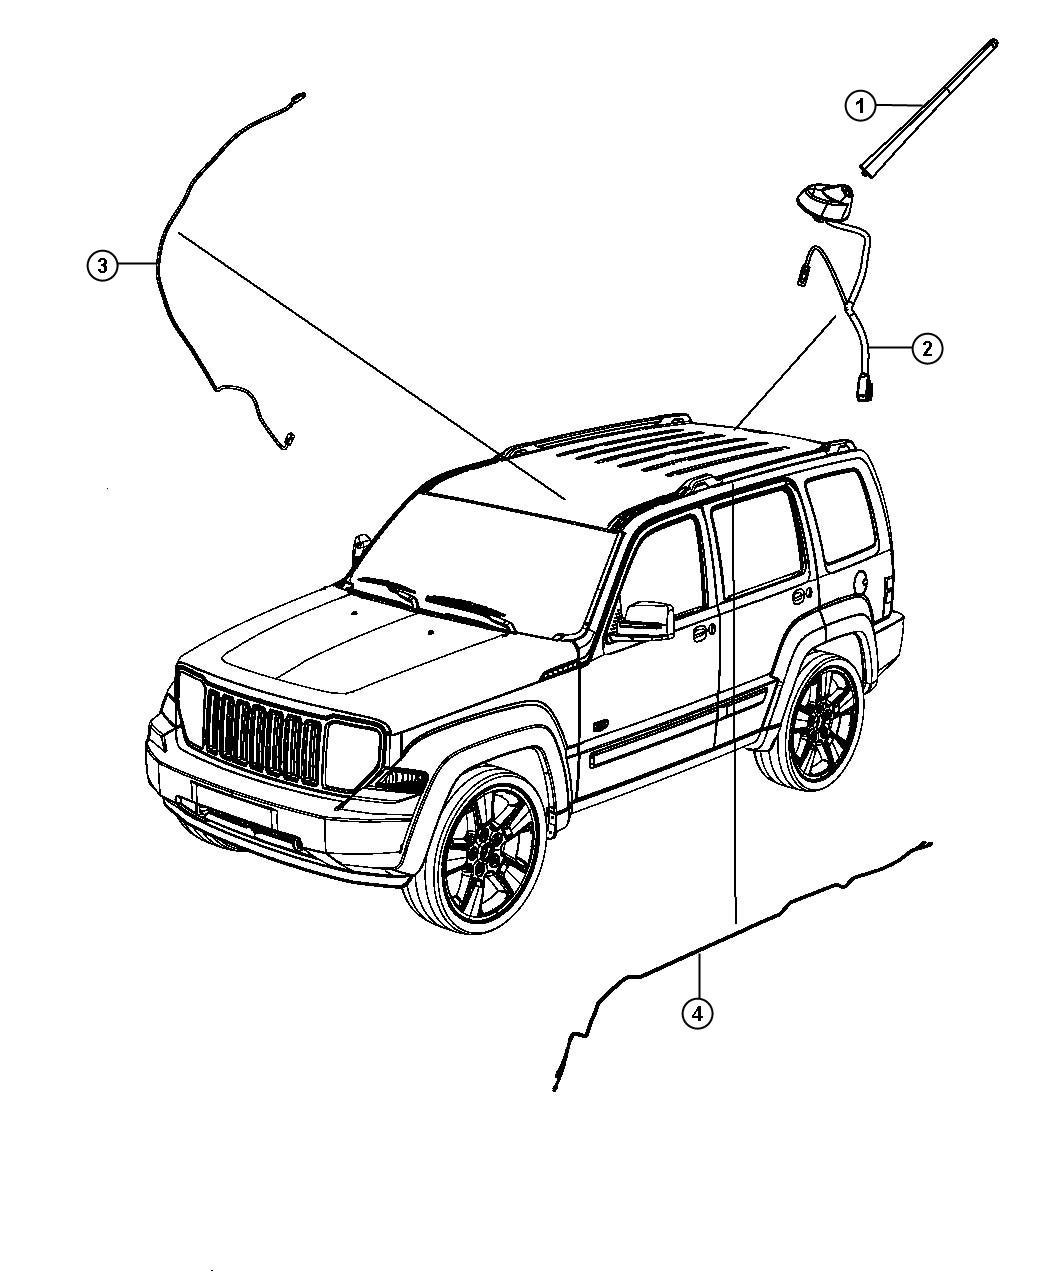 Jeep Liberty Antenna Used For Base Cable And